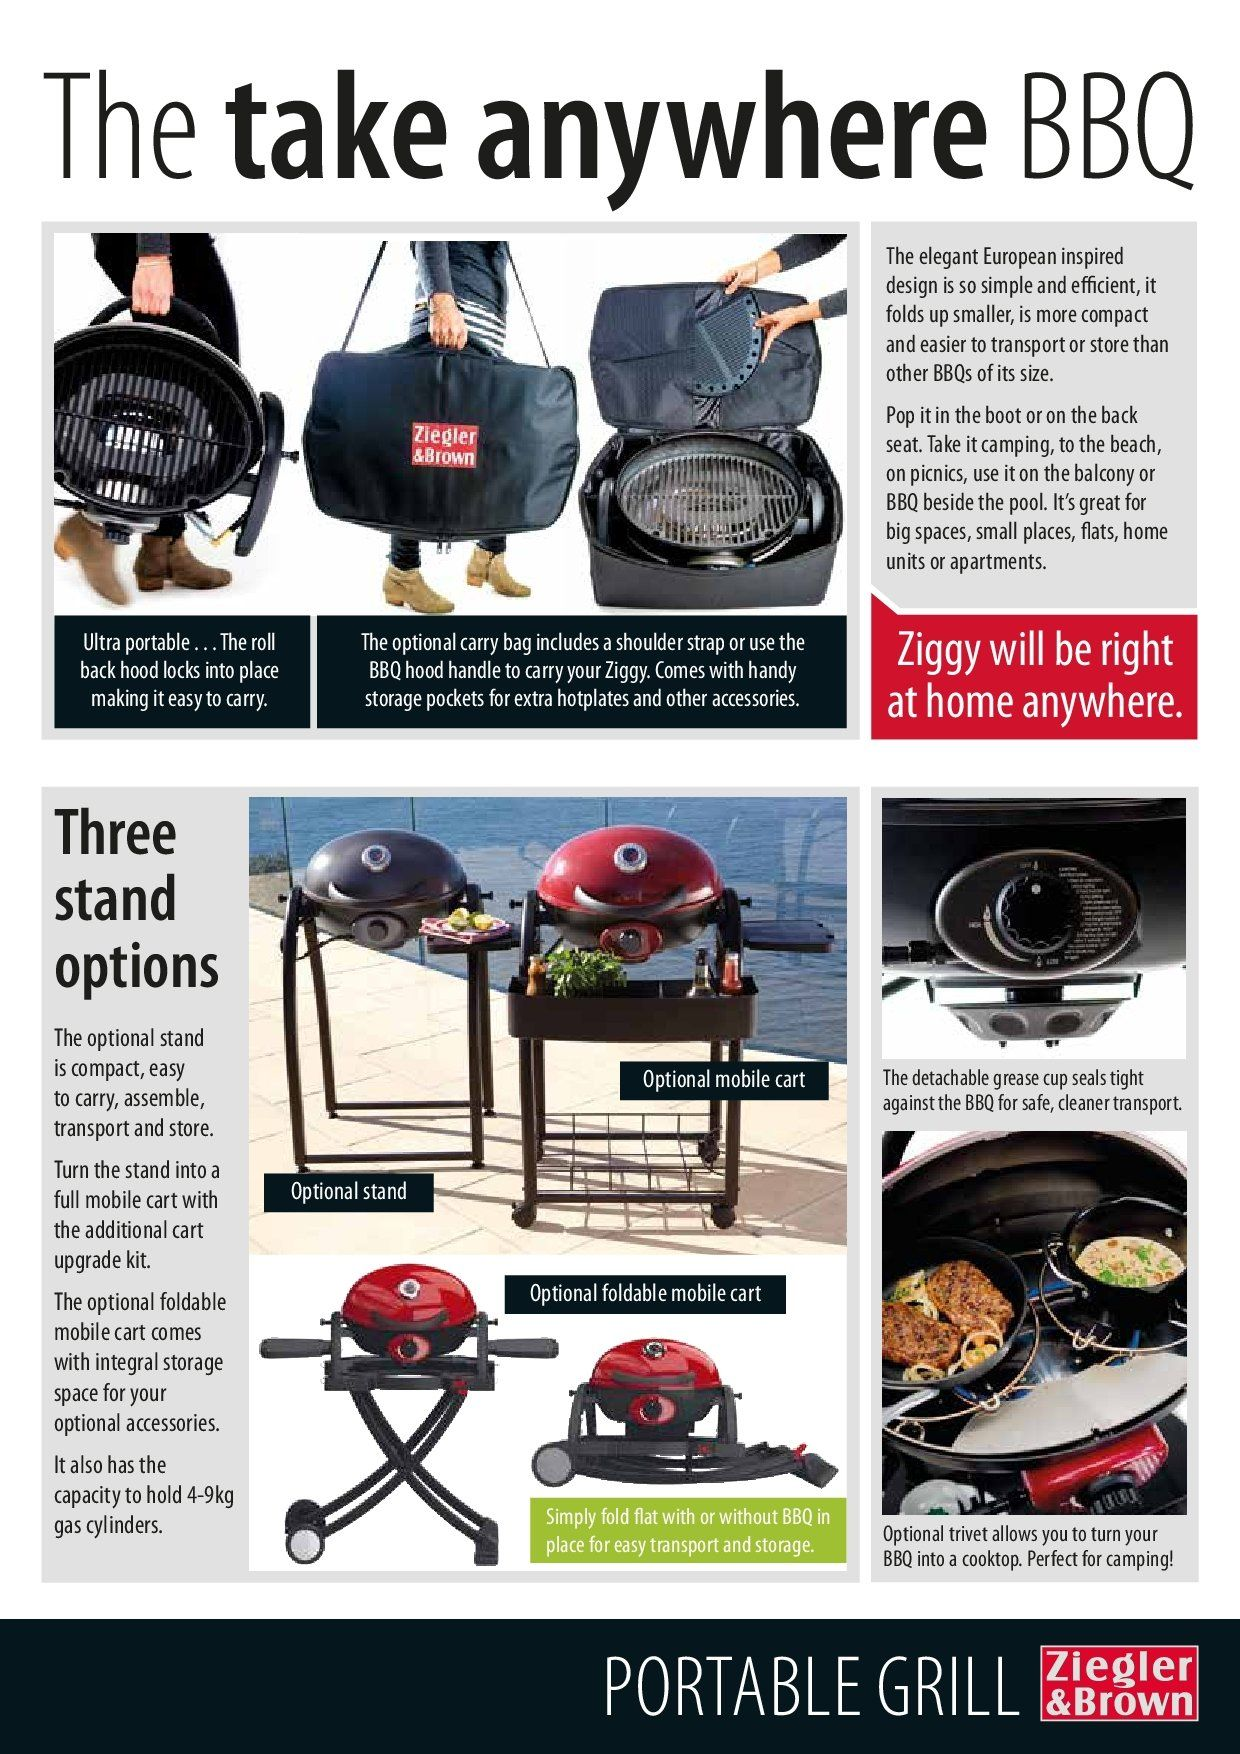 Barbeques galore catalogue sales products cart cooktop cup charging stand